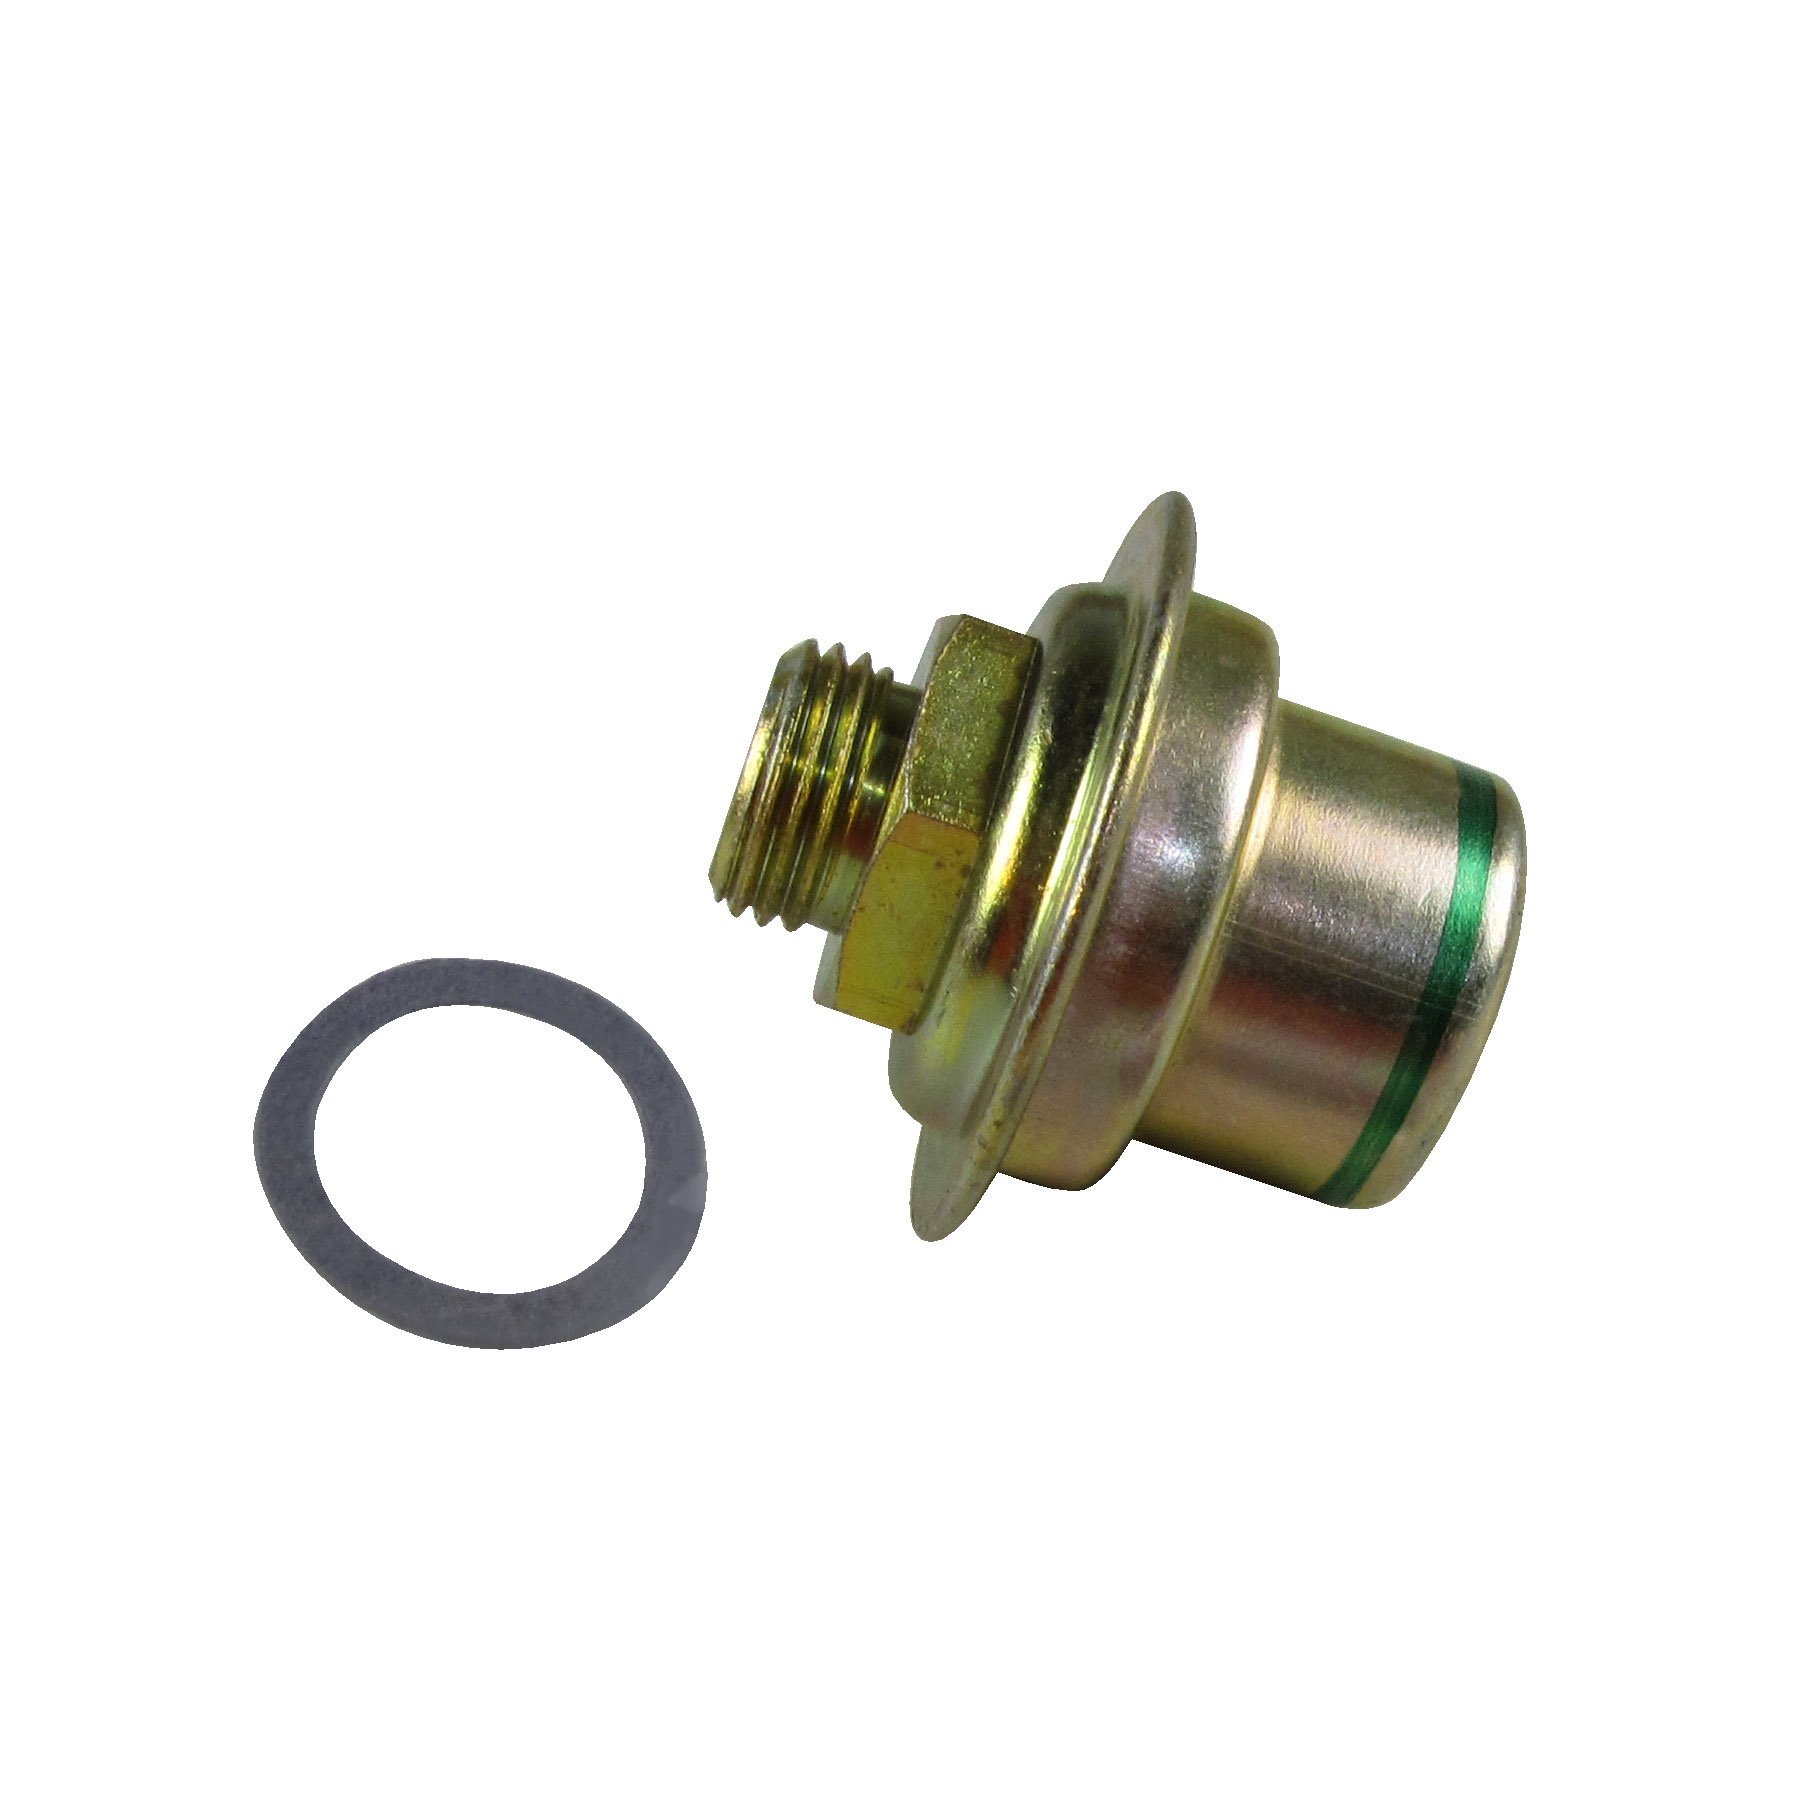 Modulator, Screw in NonAdjustable, fits 1981-98 TH180 (round hole-trans side)